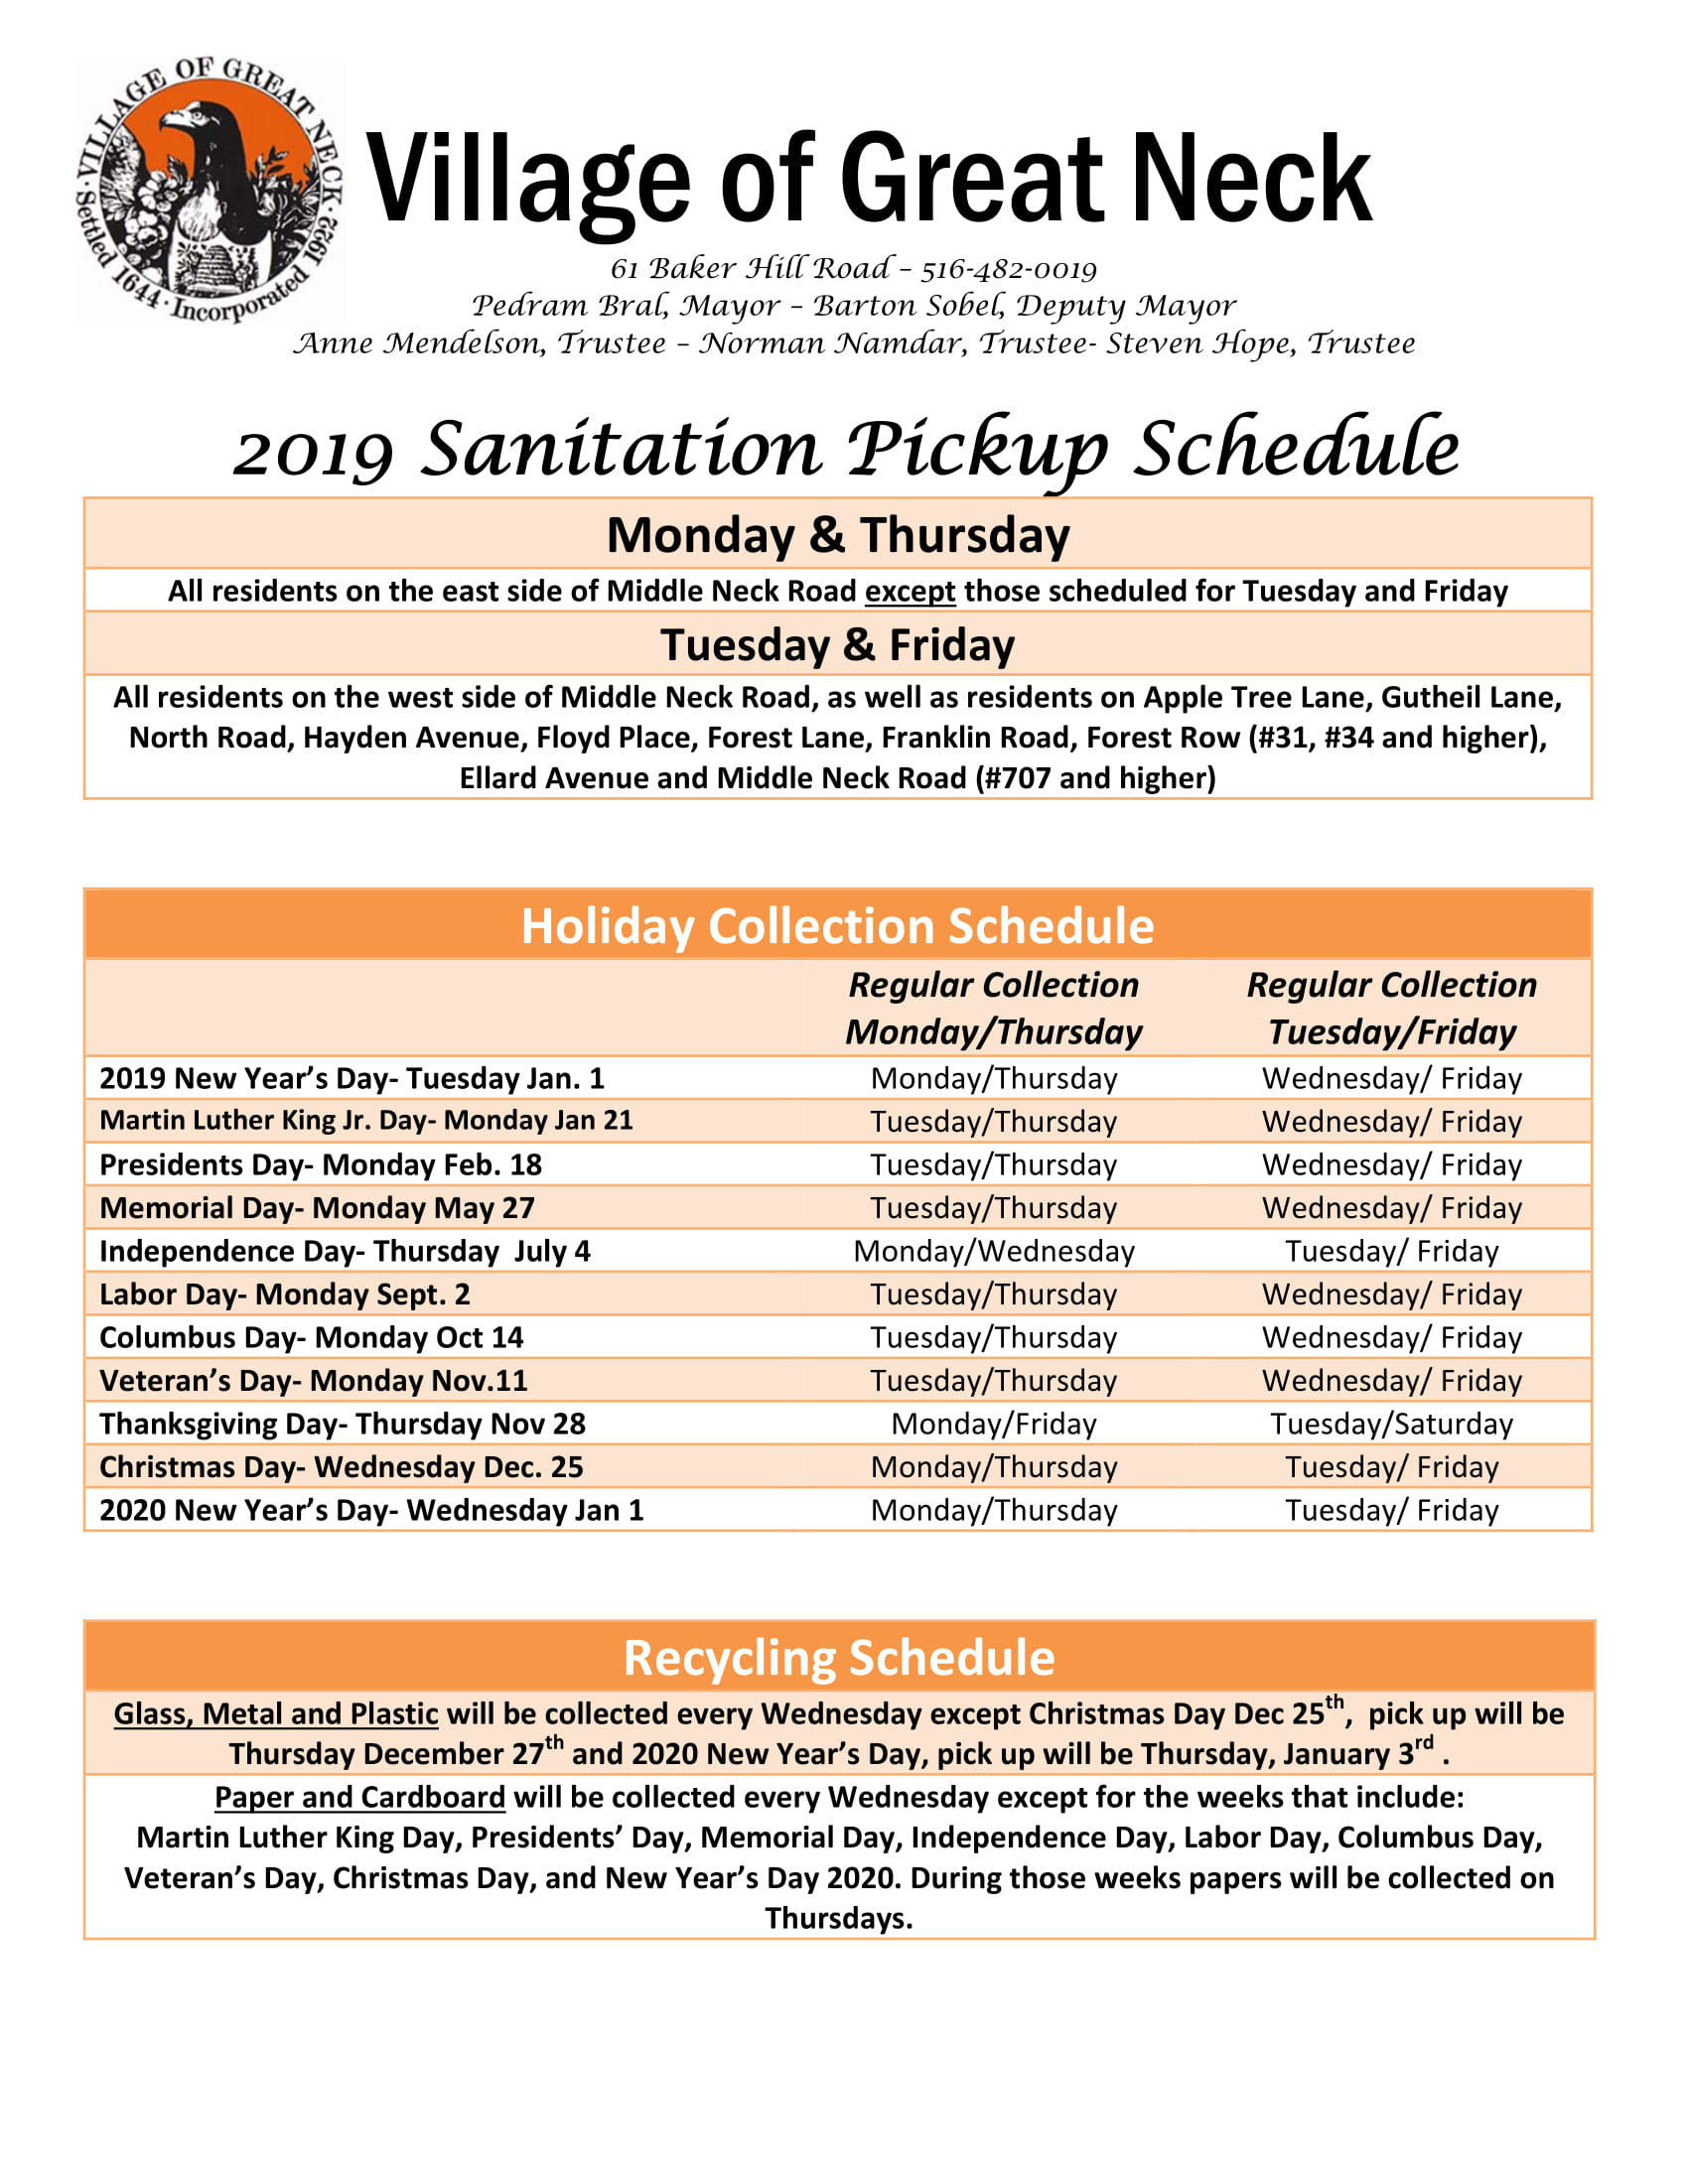 2019 Sanitation Pickup Schedule (2)